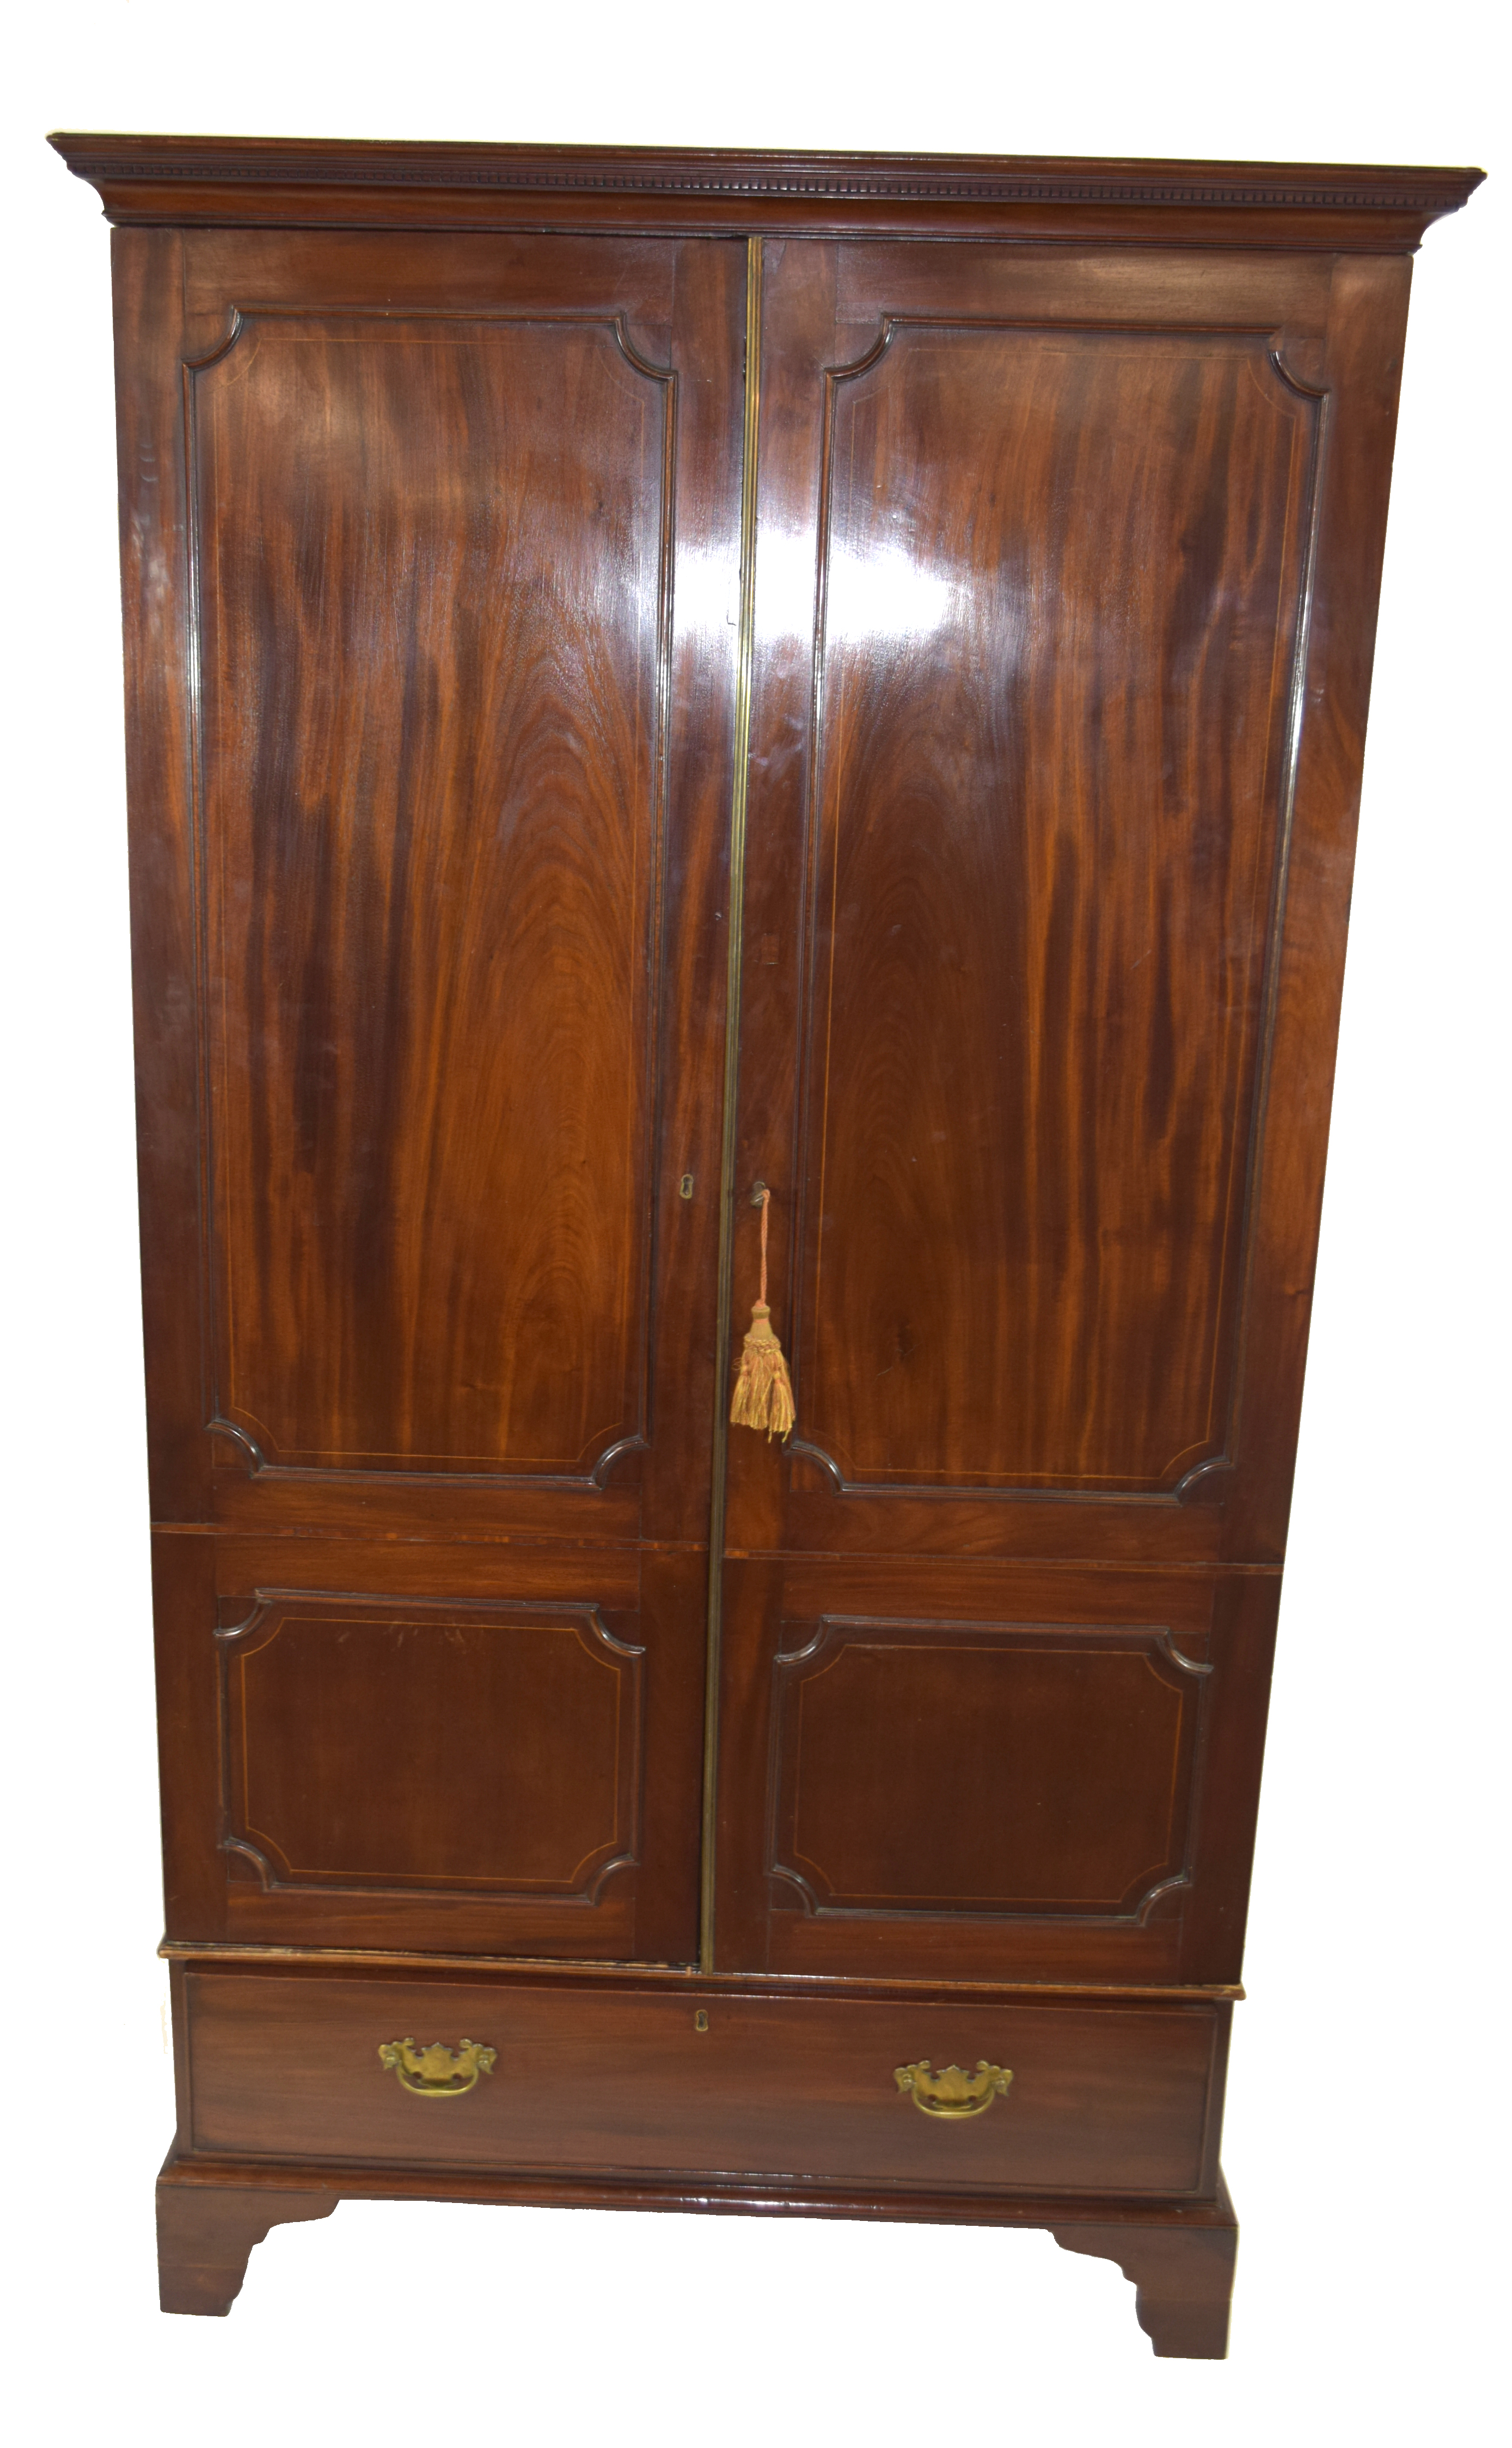 19th century mahogany wardrobe with moulded cornice over two panelled doors and single drawer